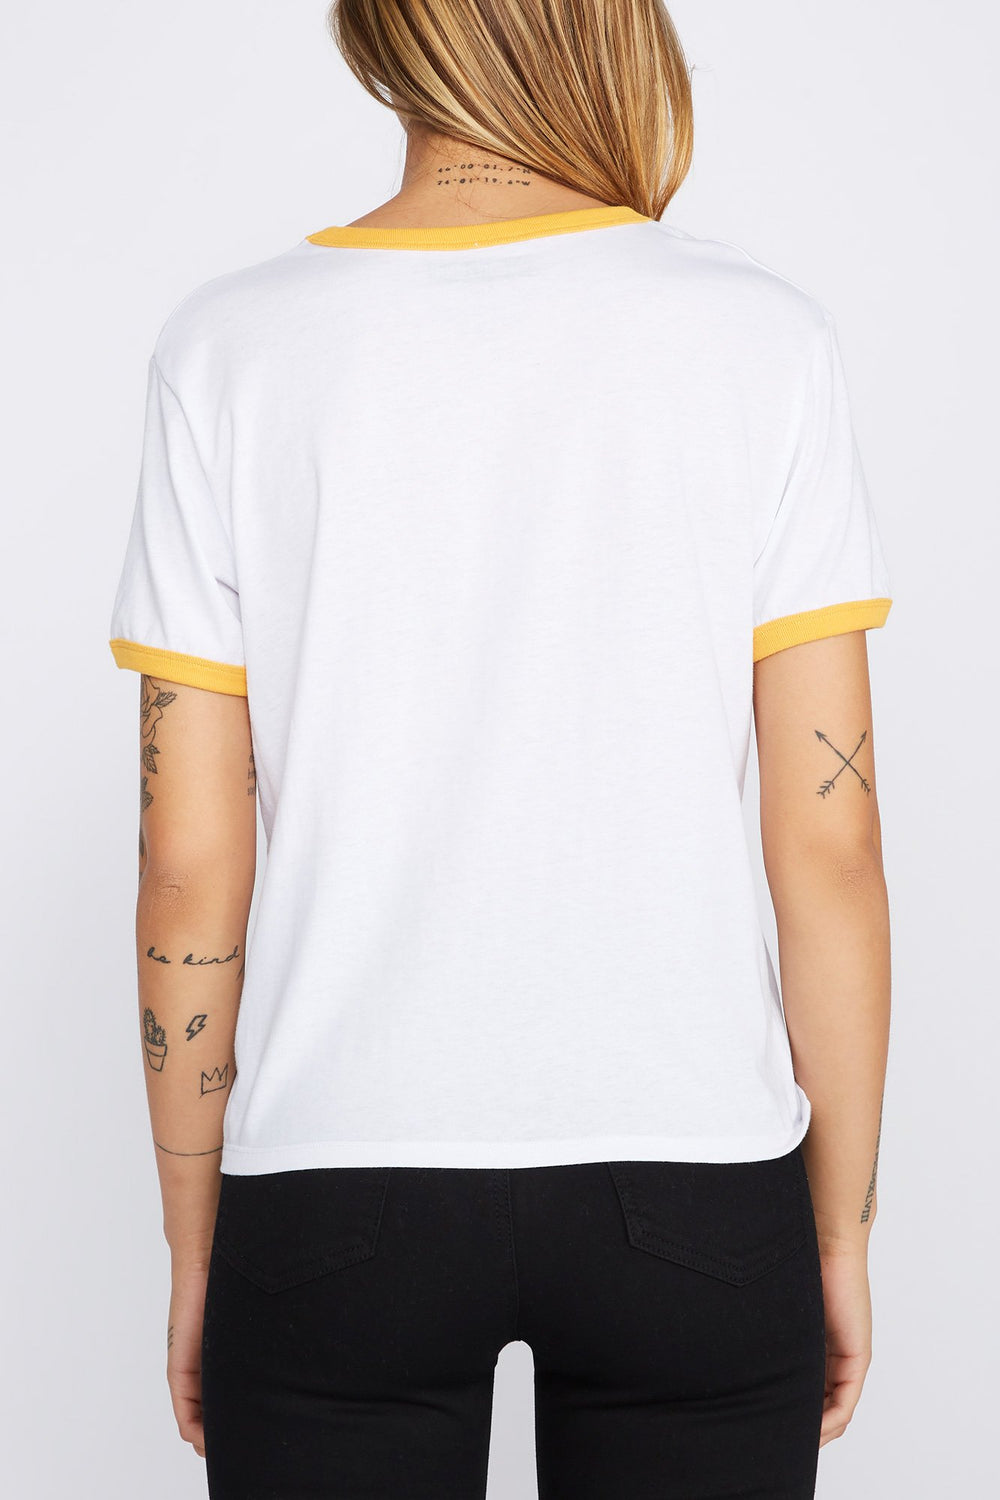 Zoo York Womens Logo T-Shirt Yellow